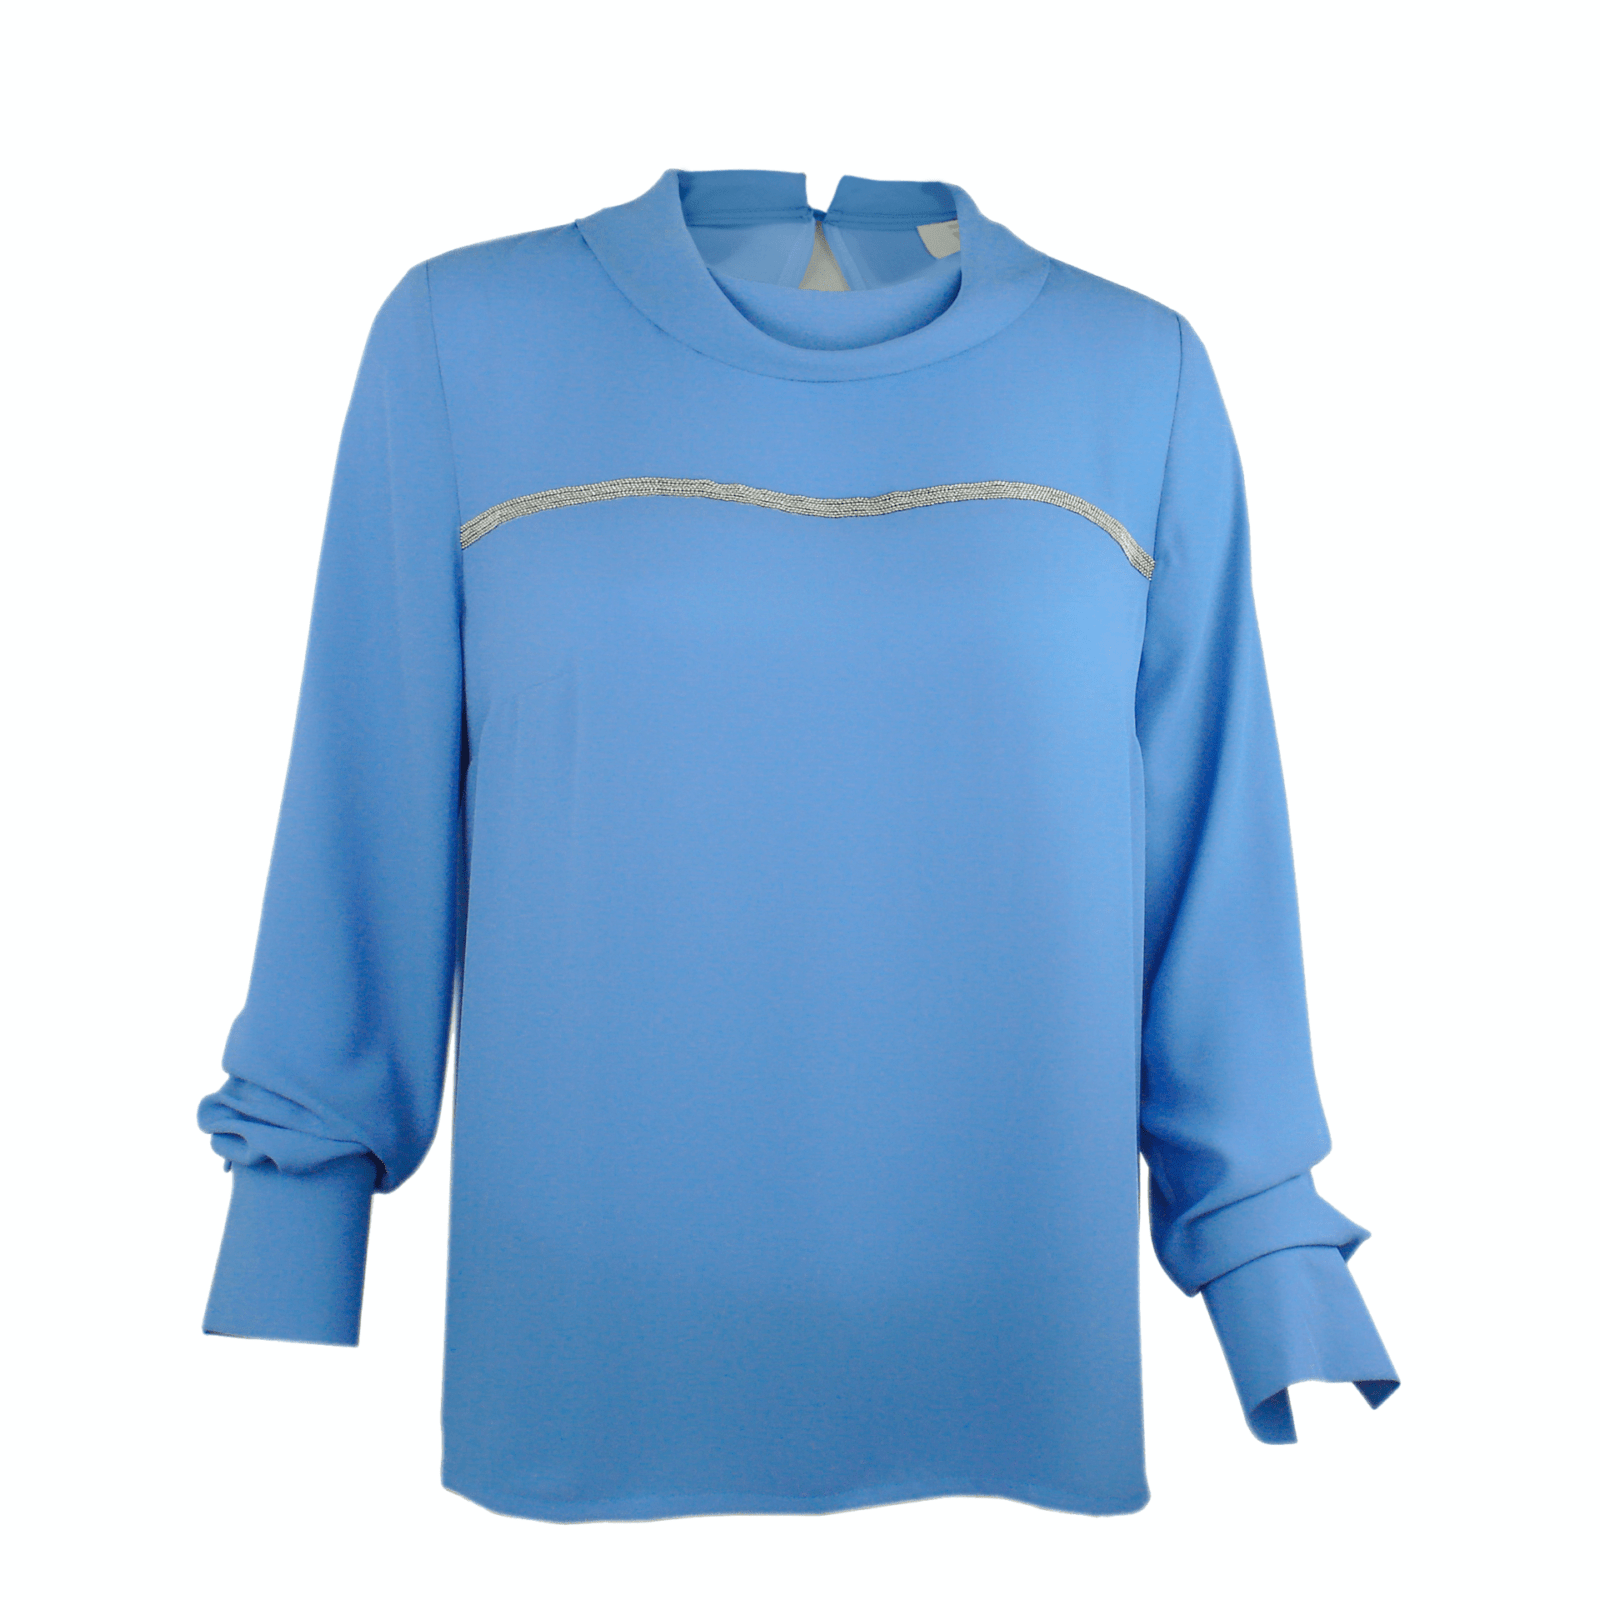 """Casual blouse with cowl neck in """"palace blue"""" color buy online www.axelles-fashion.com"""